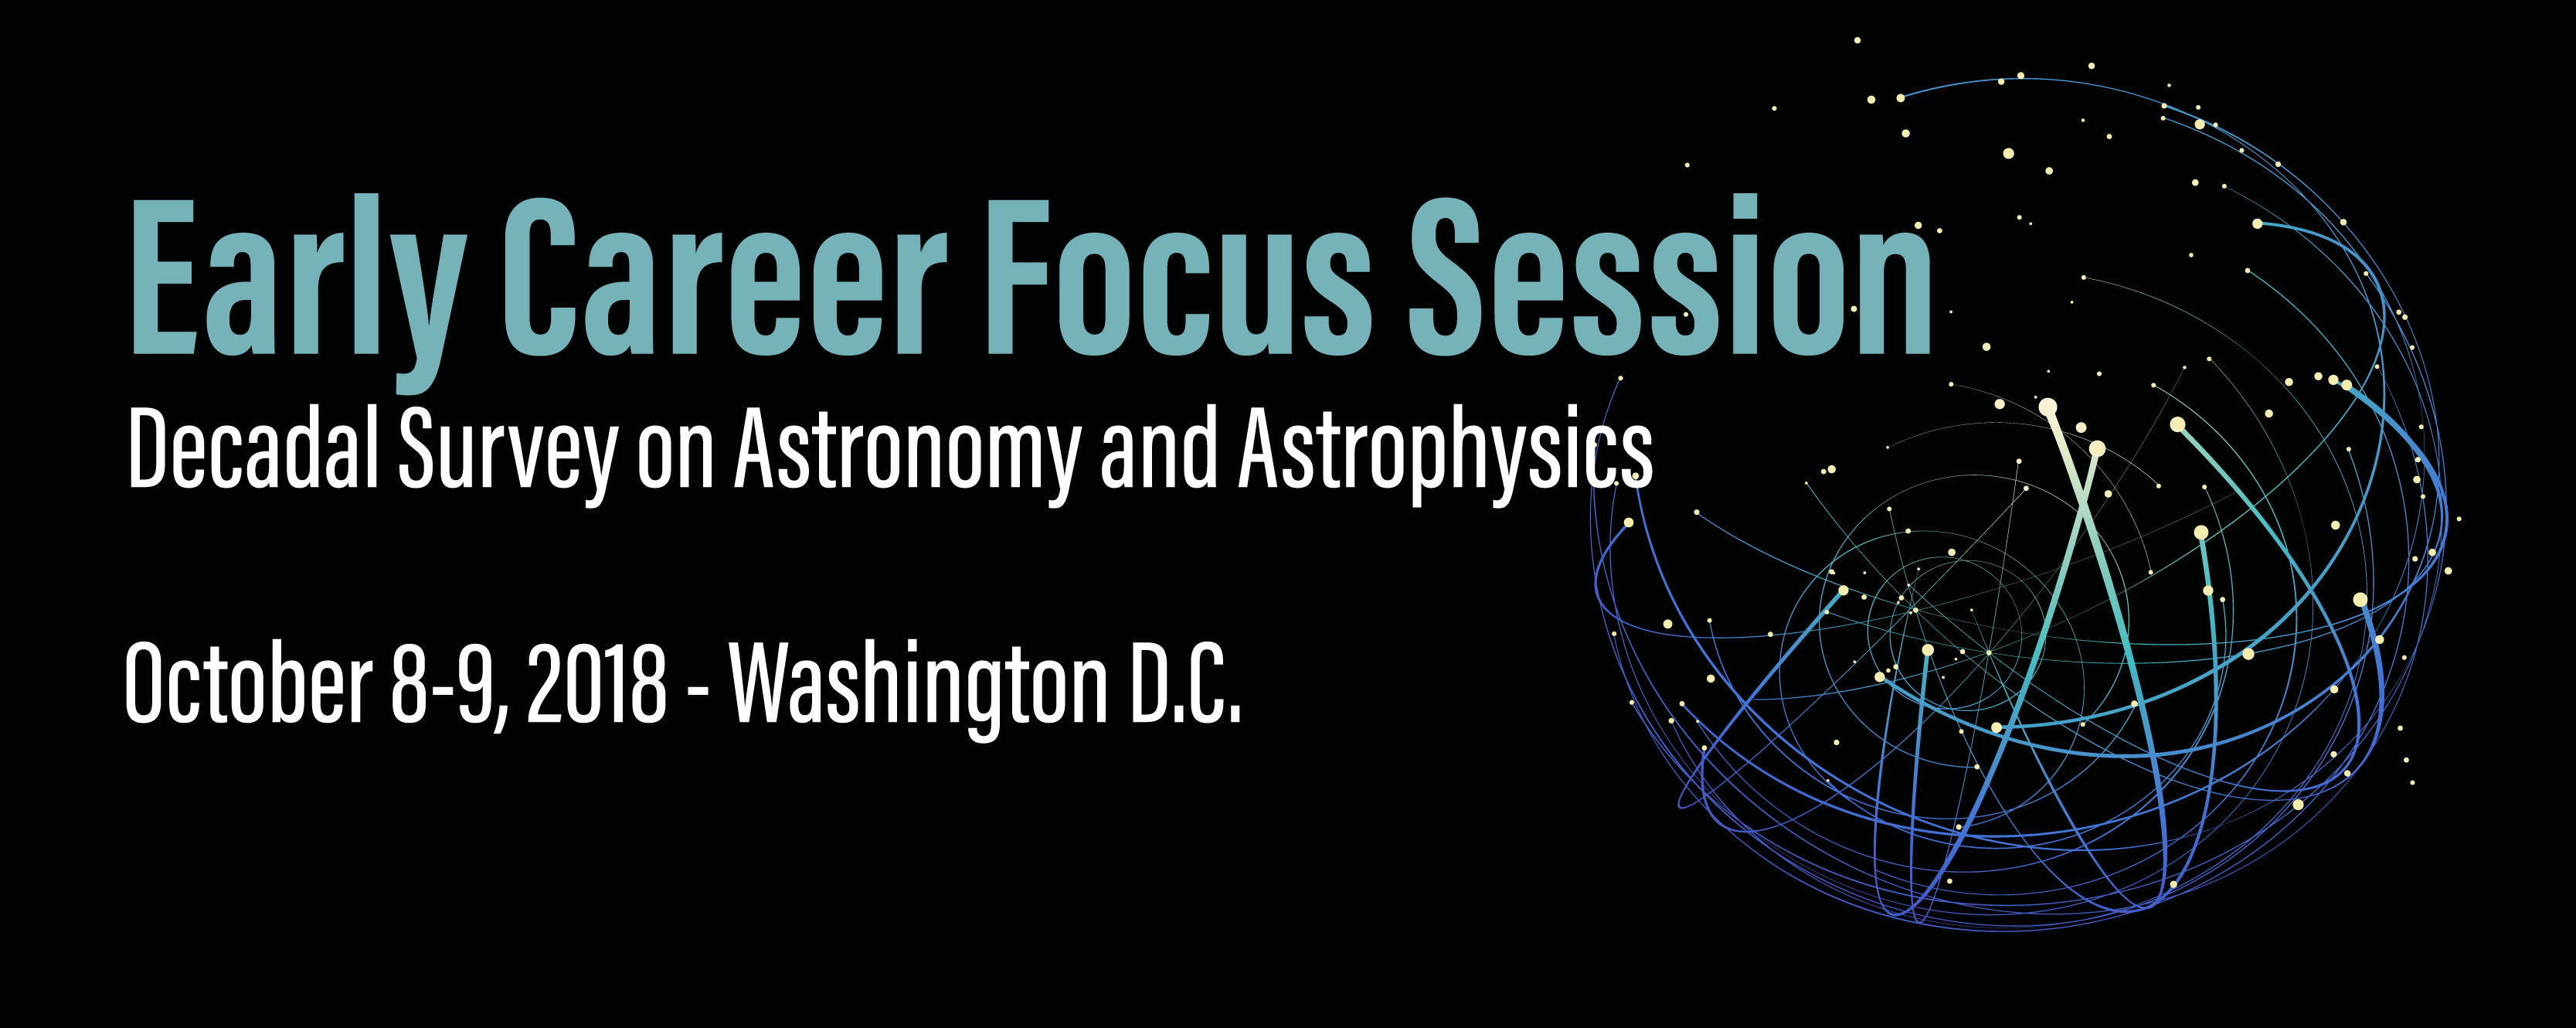 2018 early career astronomer event banner